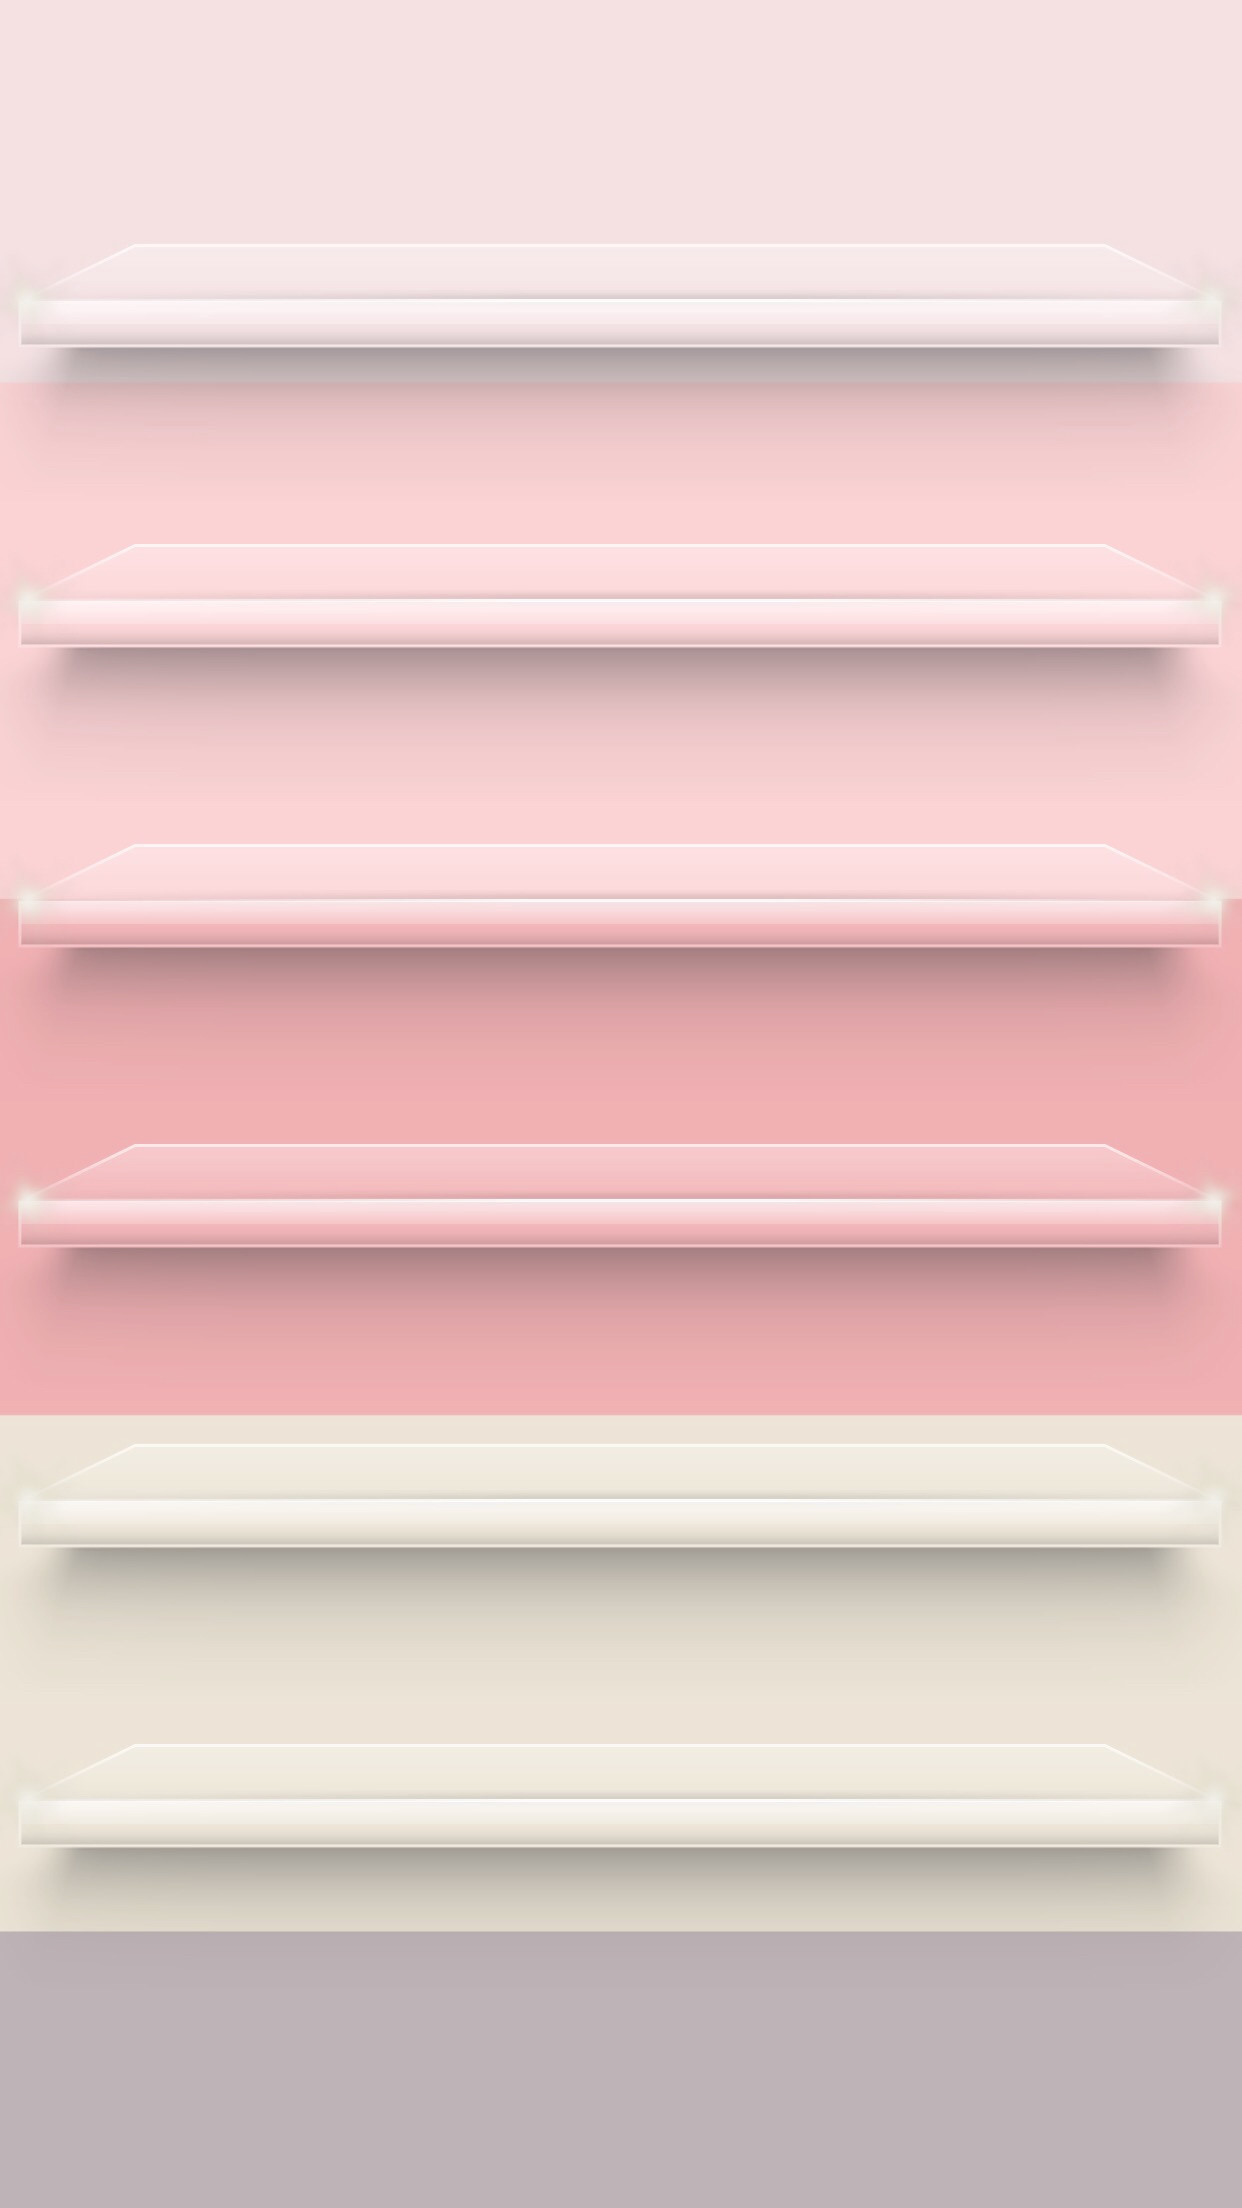 Home Screen Wallpaper For Girls 69 Images